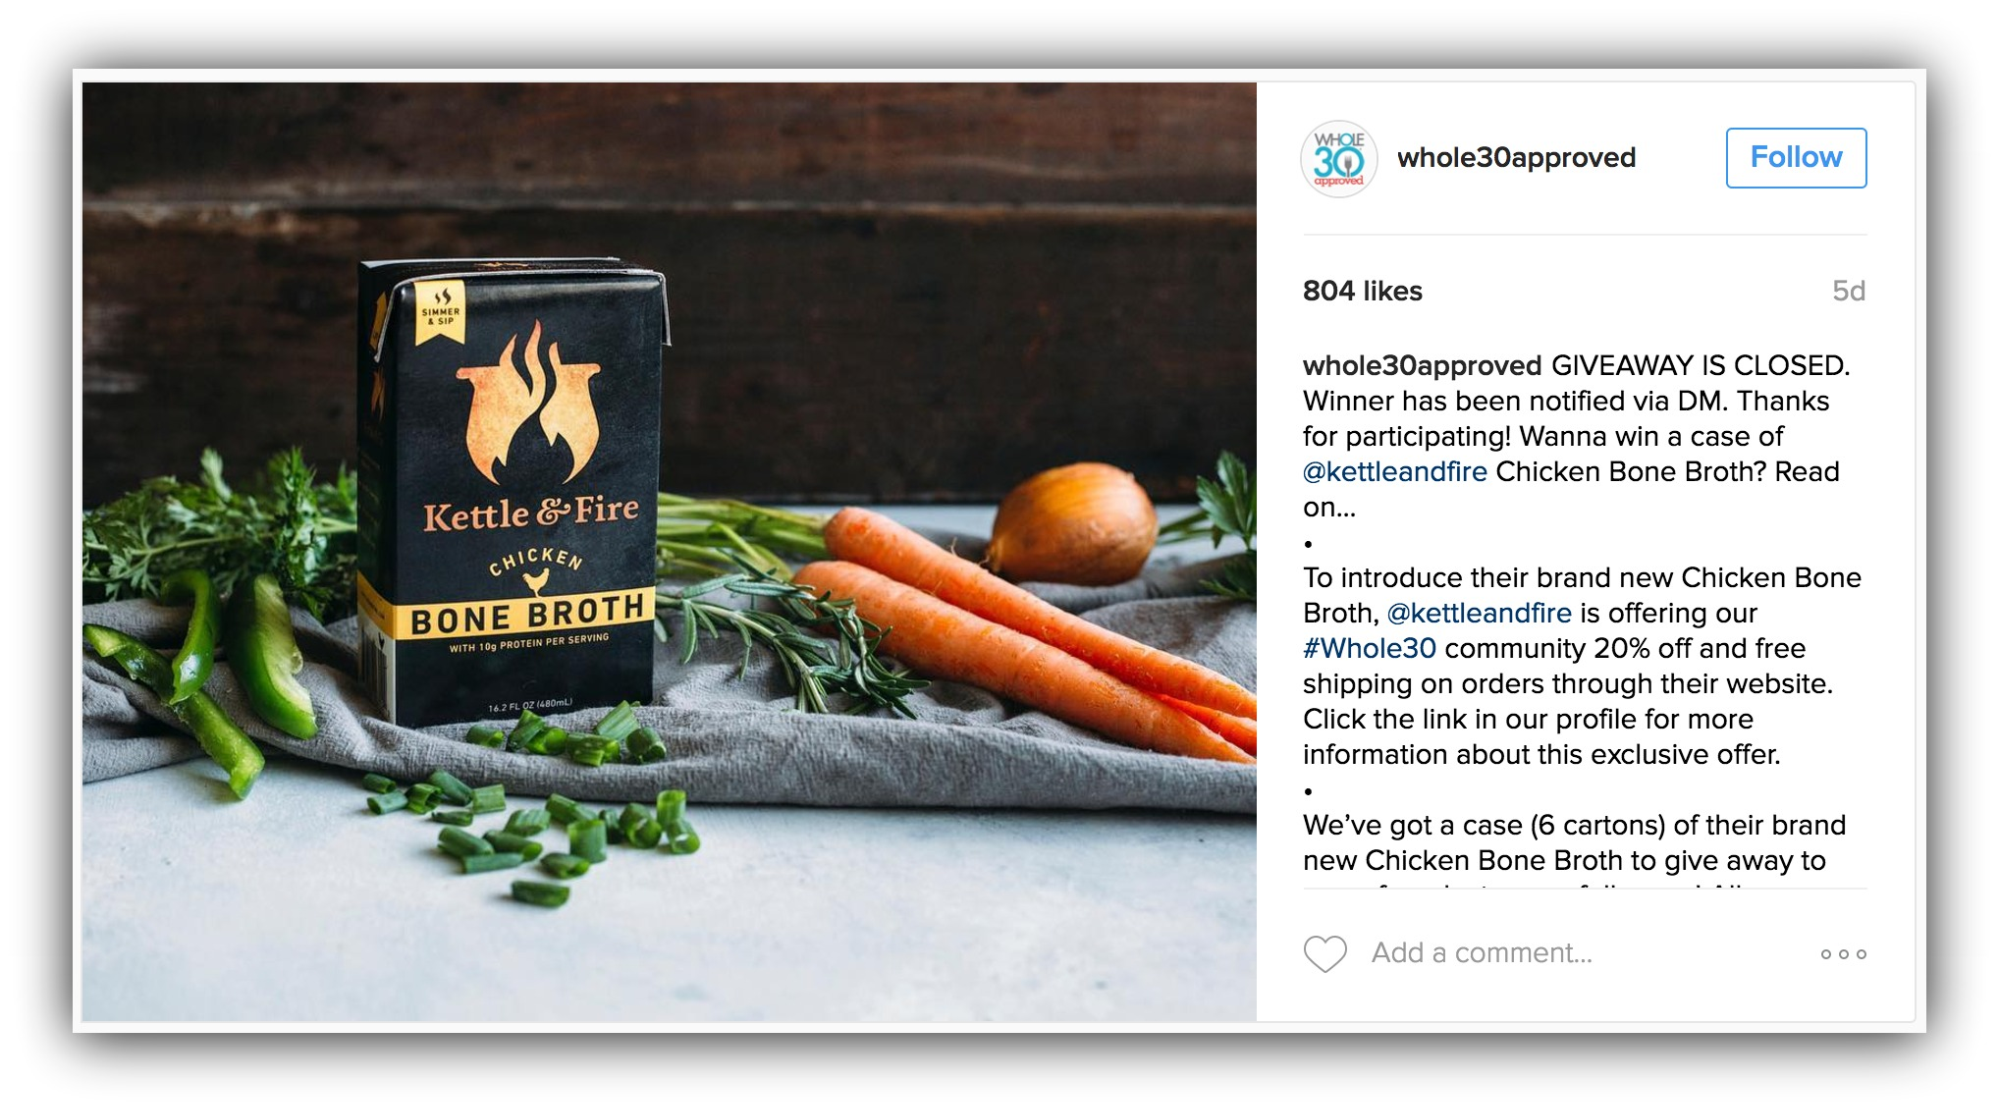 whole30approved instagram